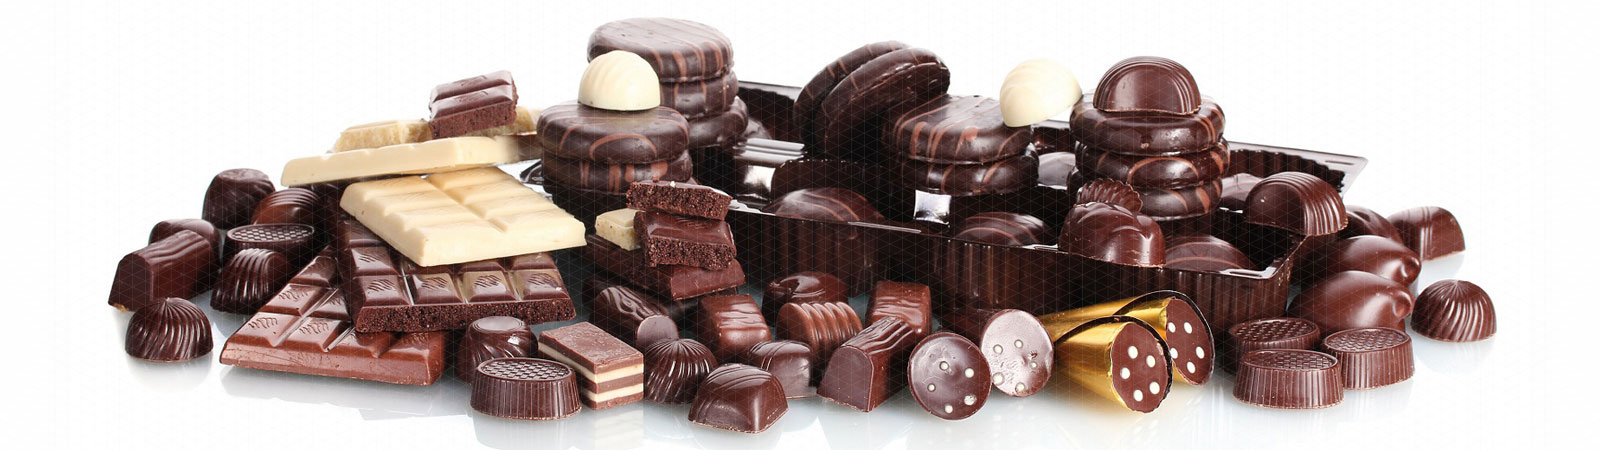 Machines for producing and packaging Chocolate & Confectionery